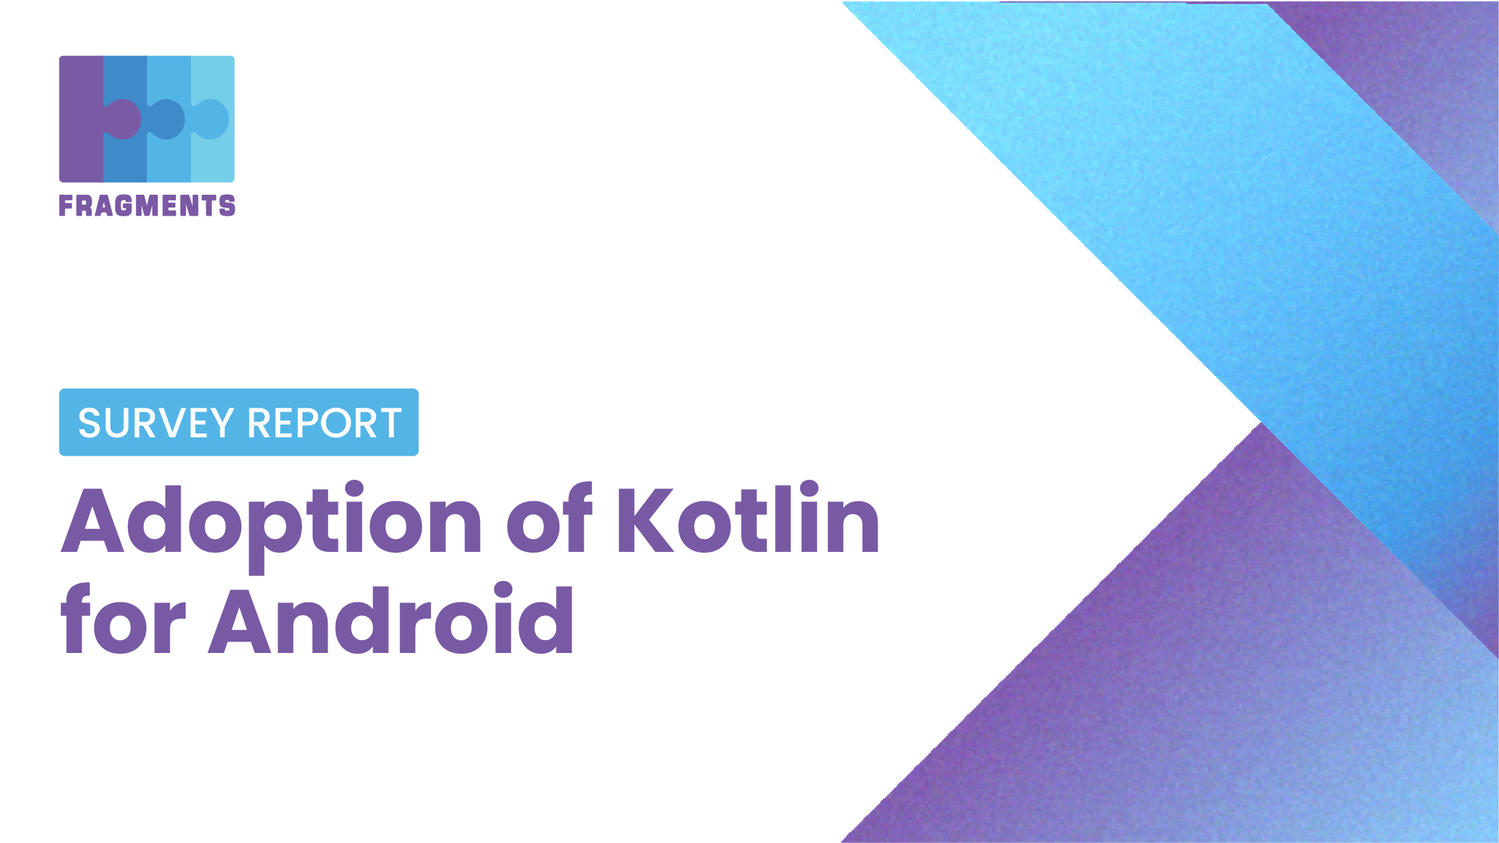 Kotlin will displace Java in the Android ecosystem.